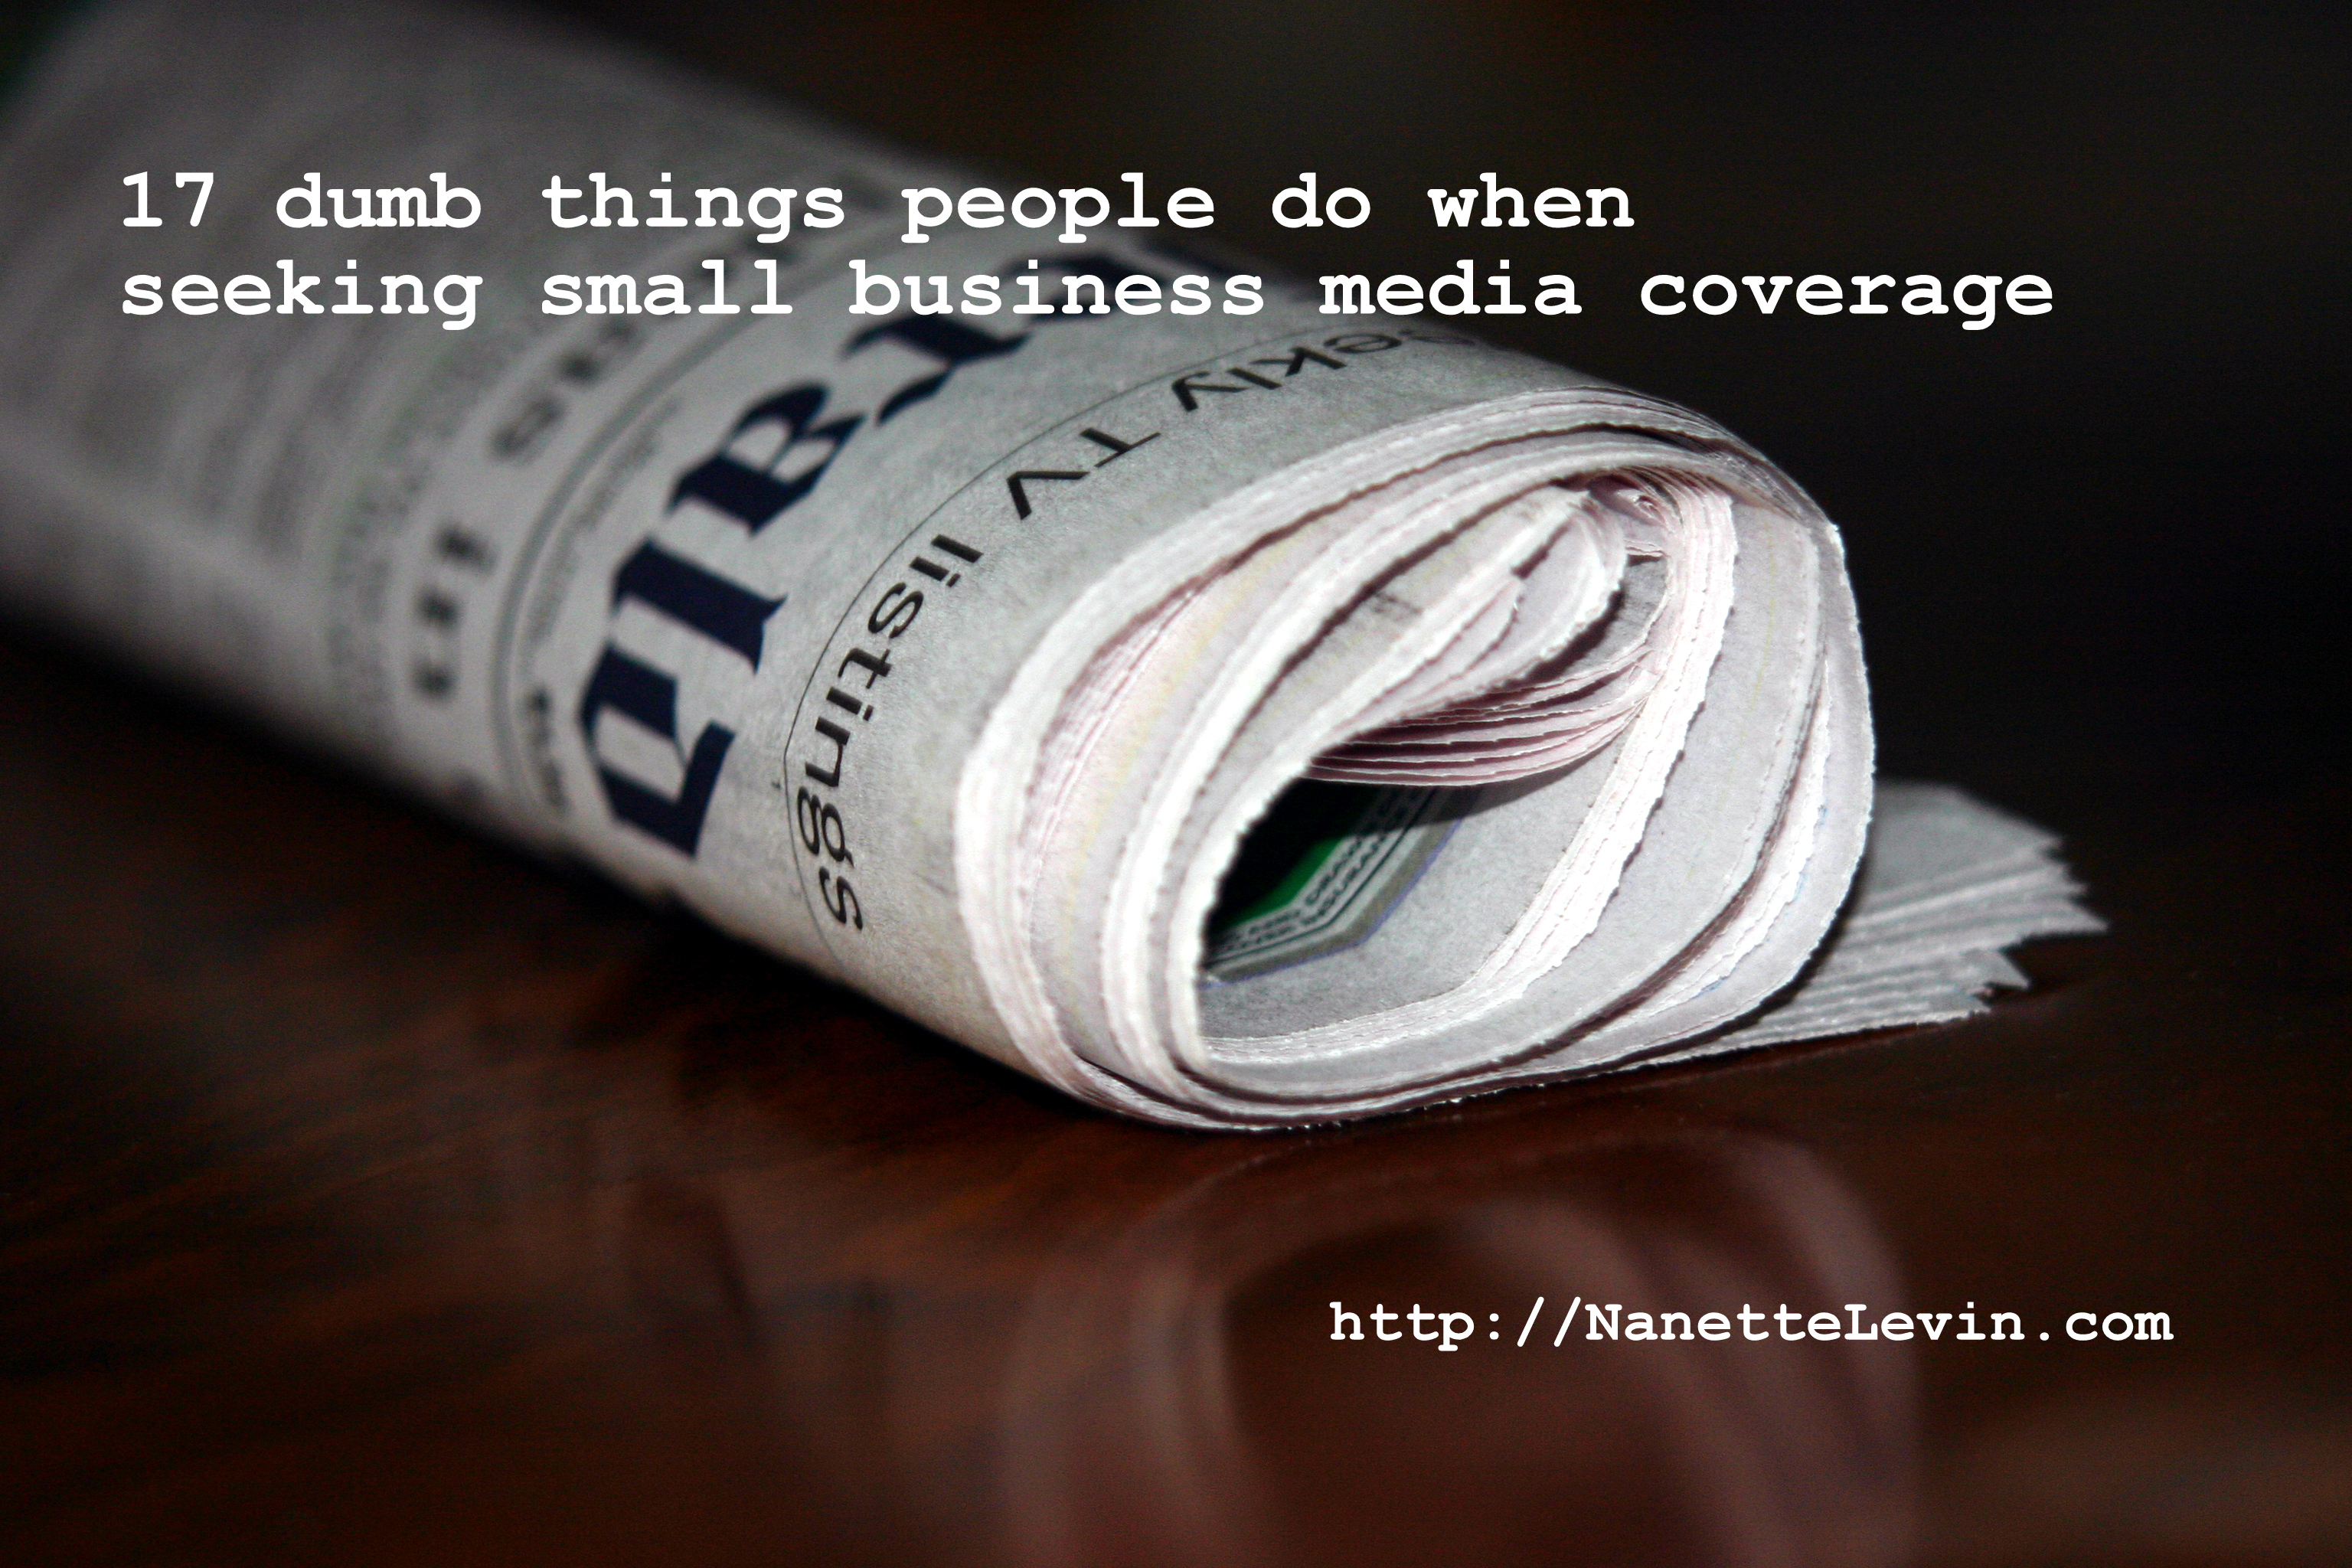 small business media coverage isn't hard to get if you don't do dumb things - 17 tips so you don't go there